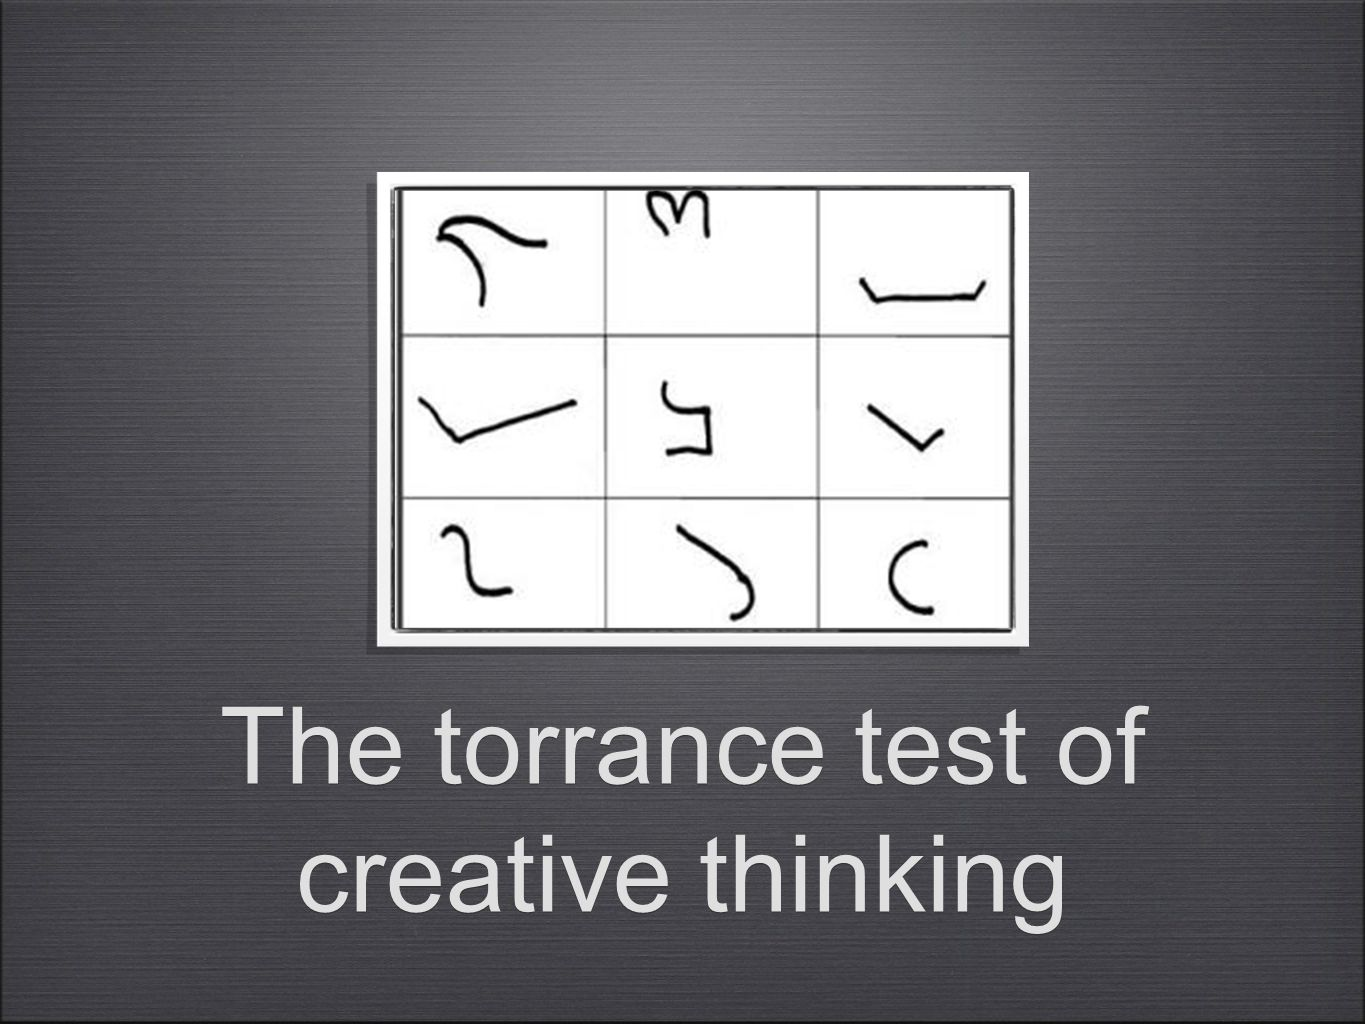 The torrance test of creative thinking